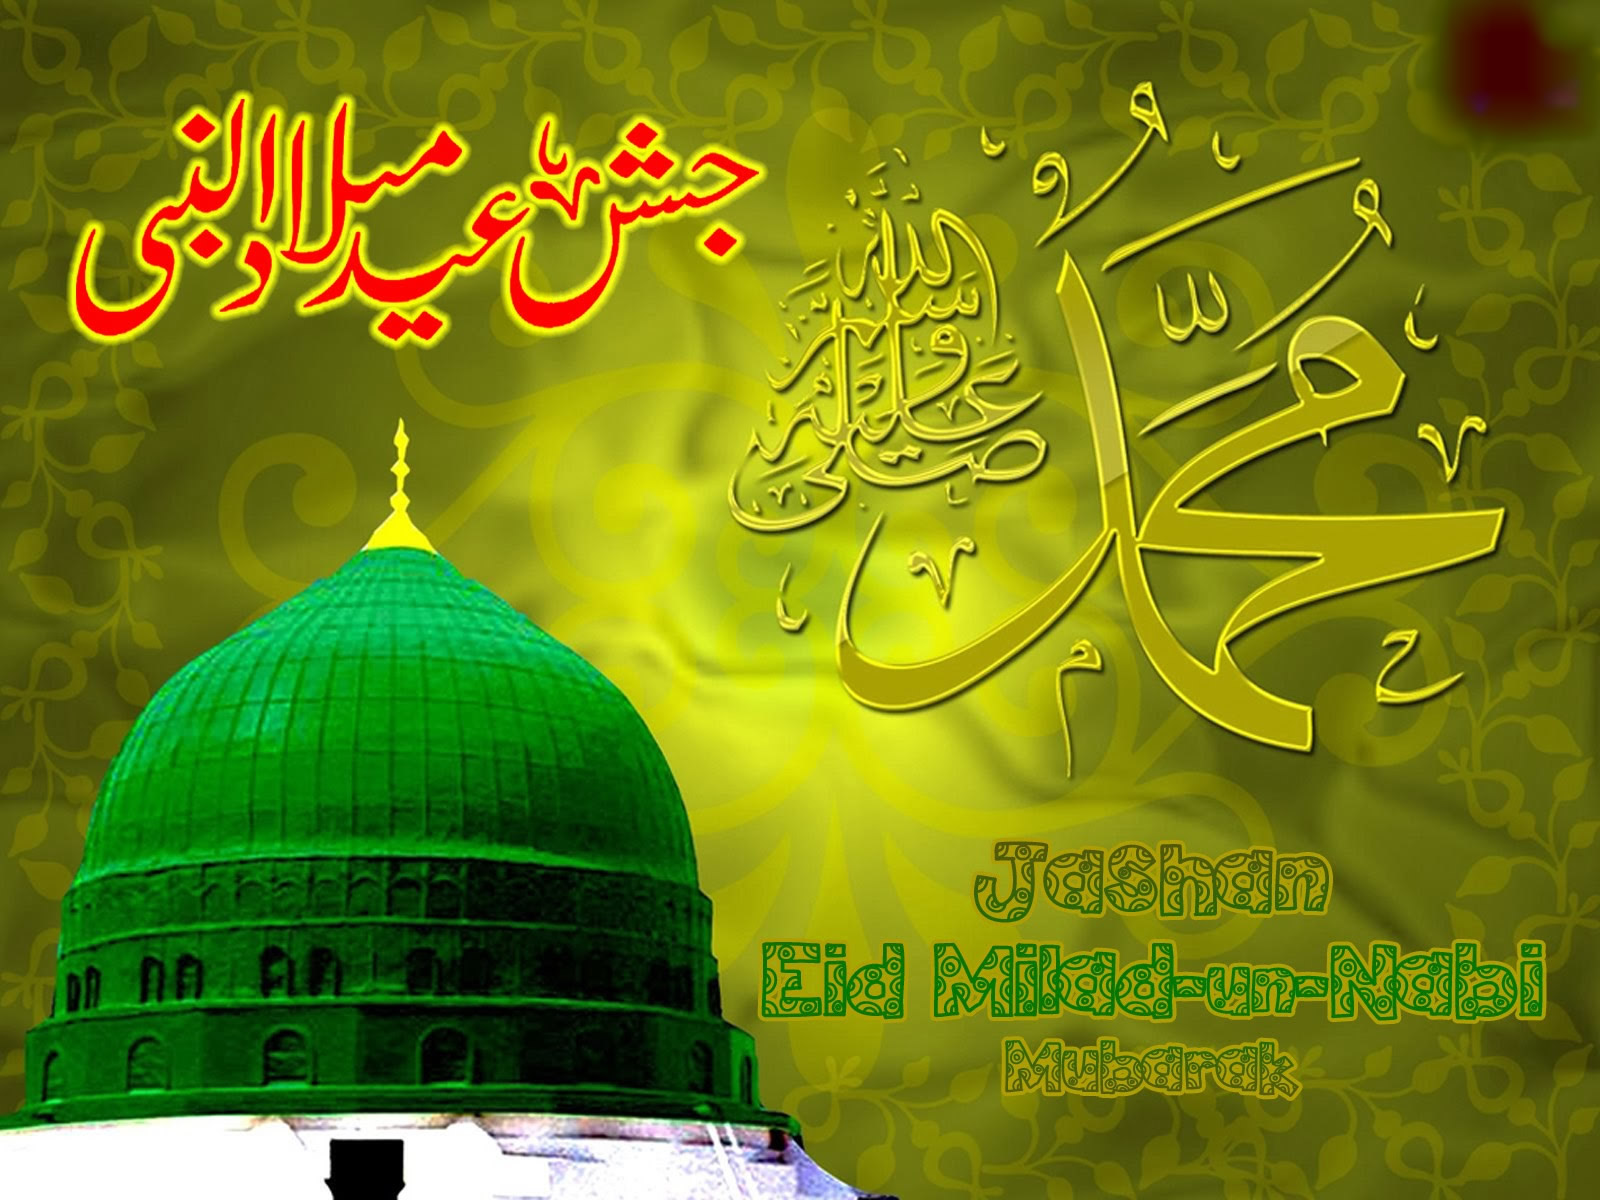 Happy eid milad un nabi quotes sms wishes greeting 2016 before eid milad un nabi quotes kristyandbryce Choice Image